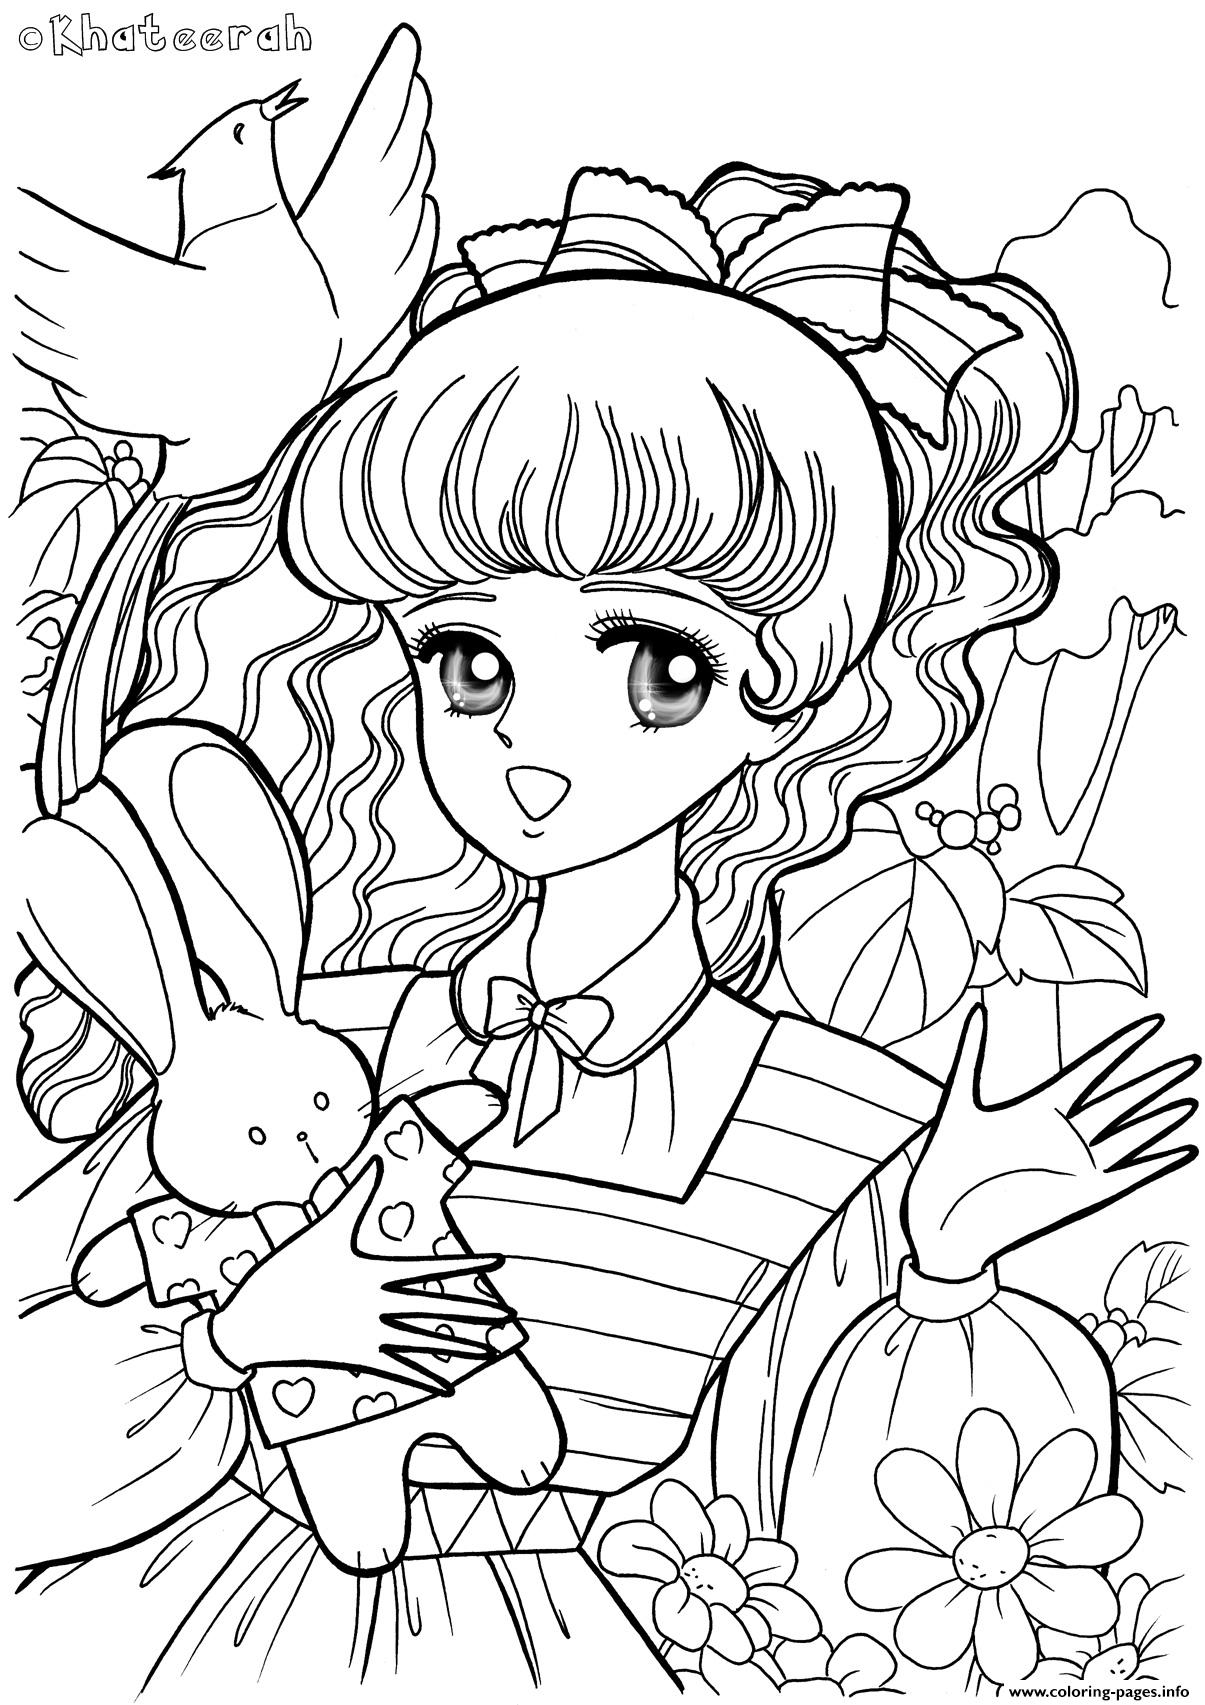 Glitter Force Rabbit Bird coloring pages